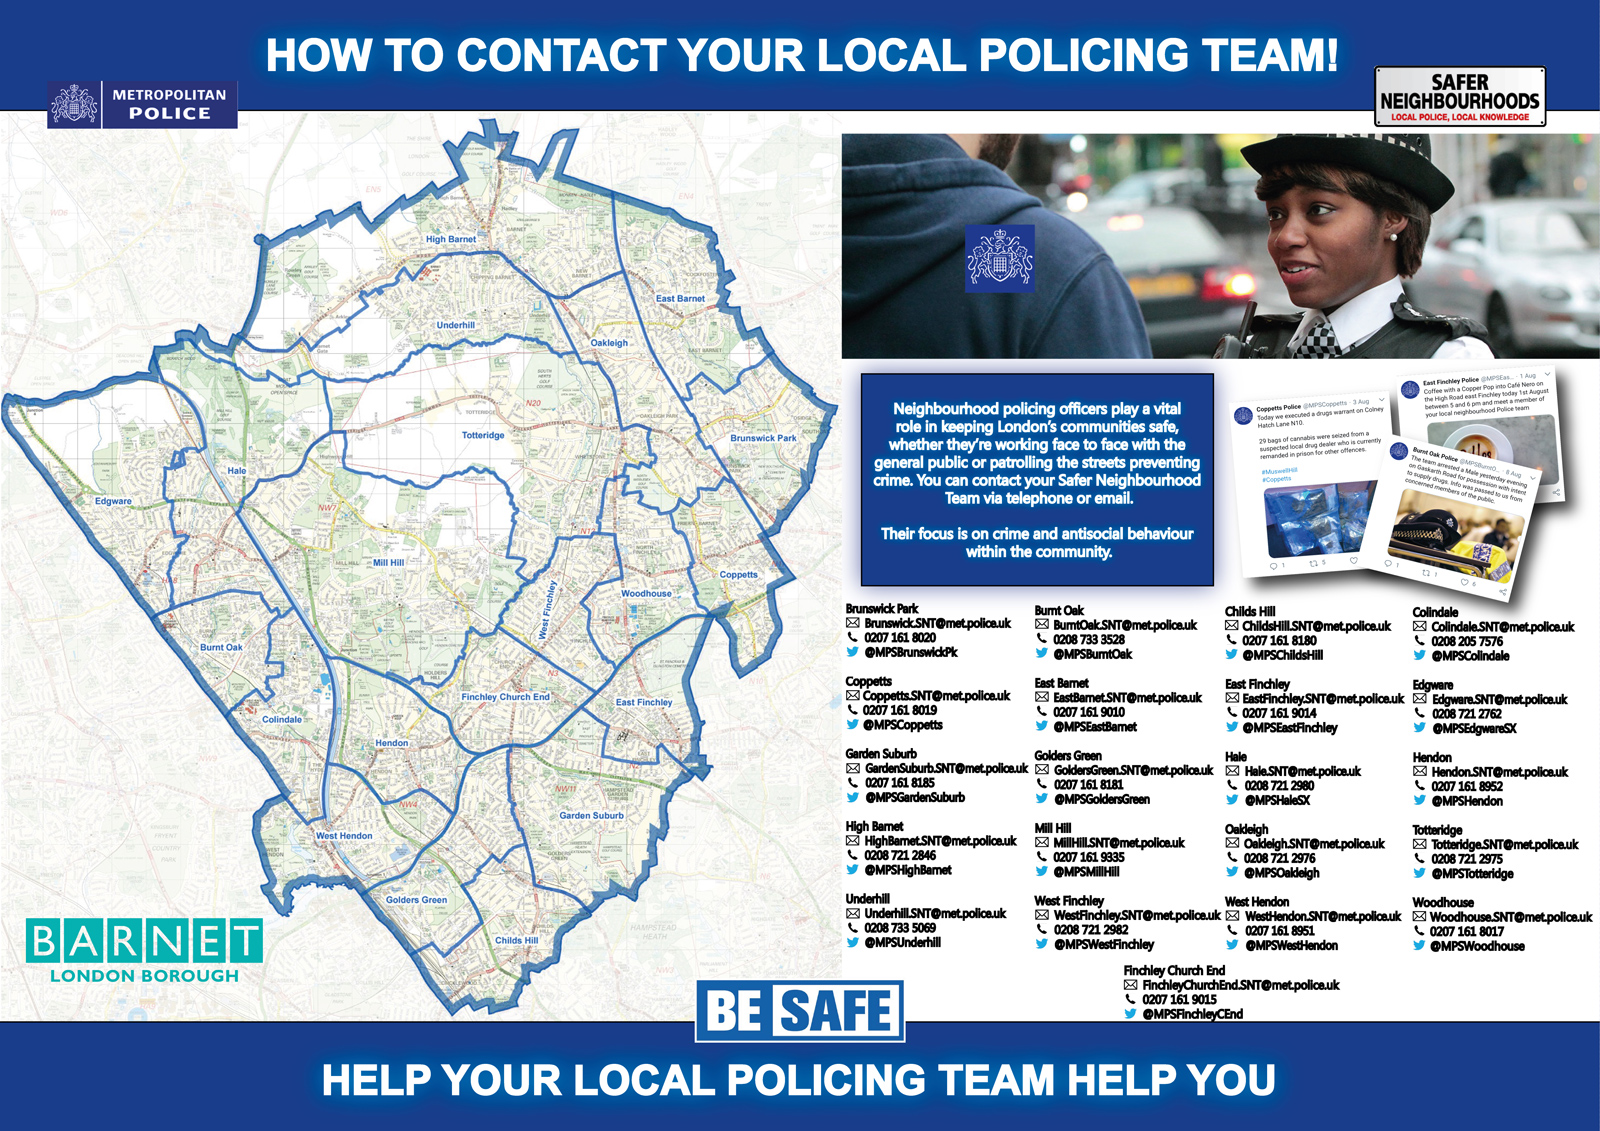 barnet-local-policing-poster-5kr